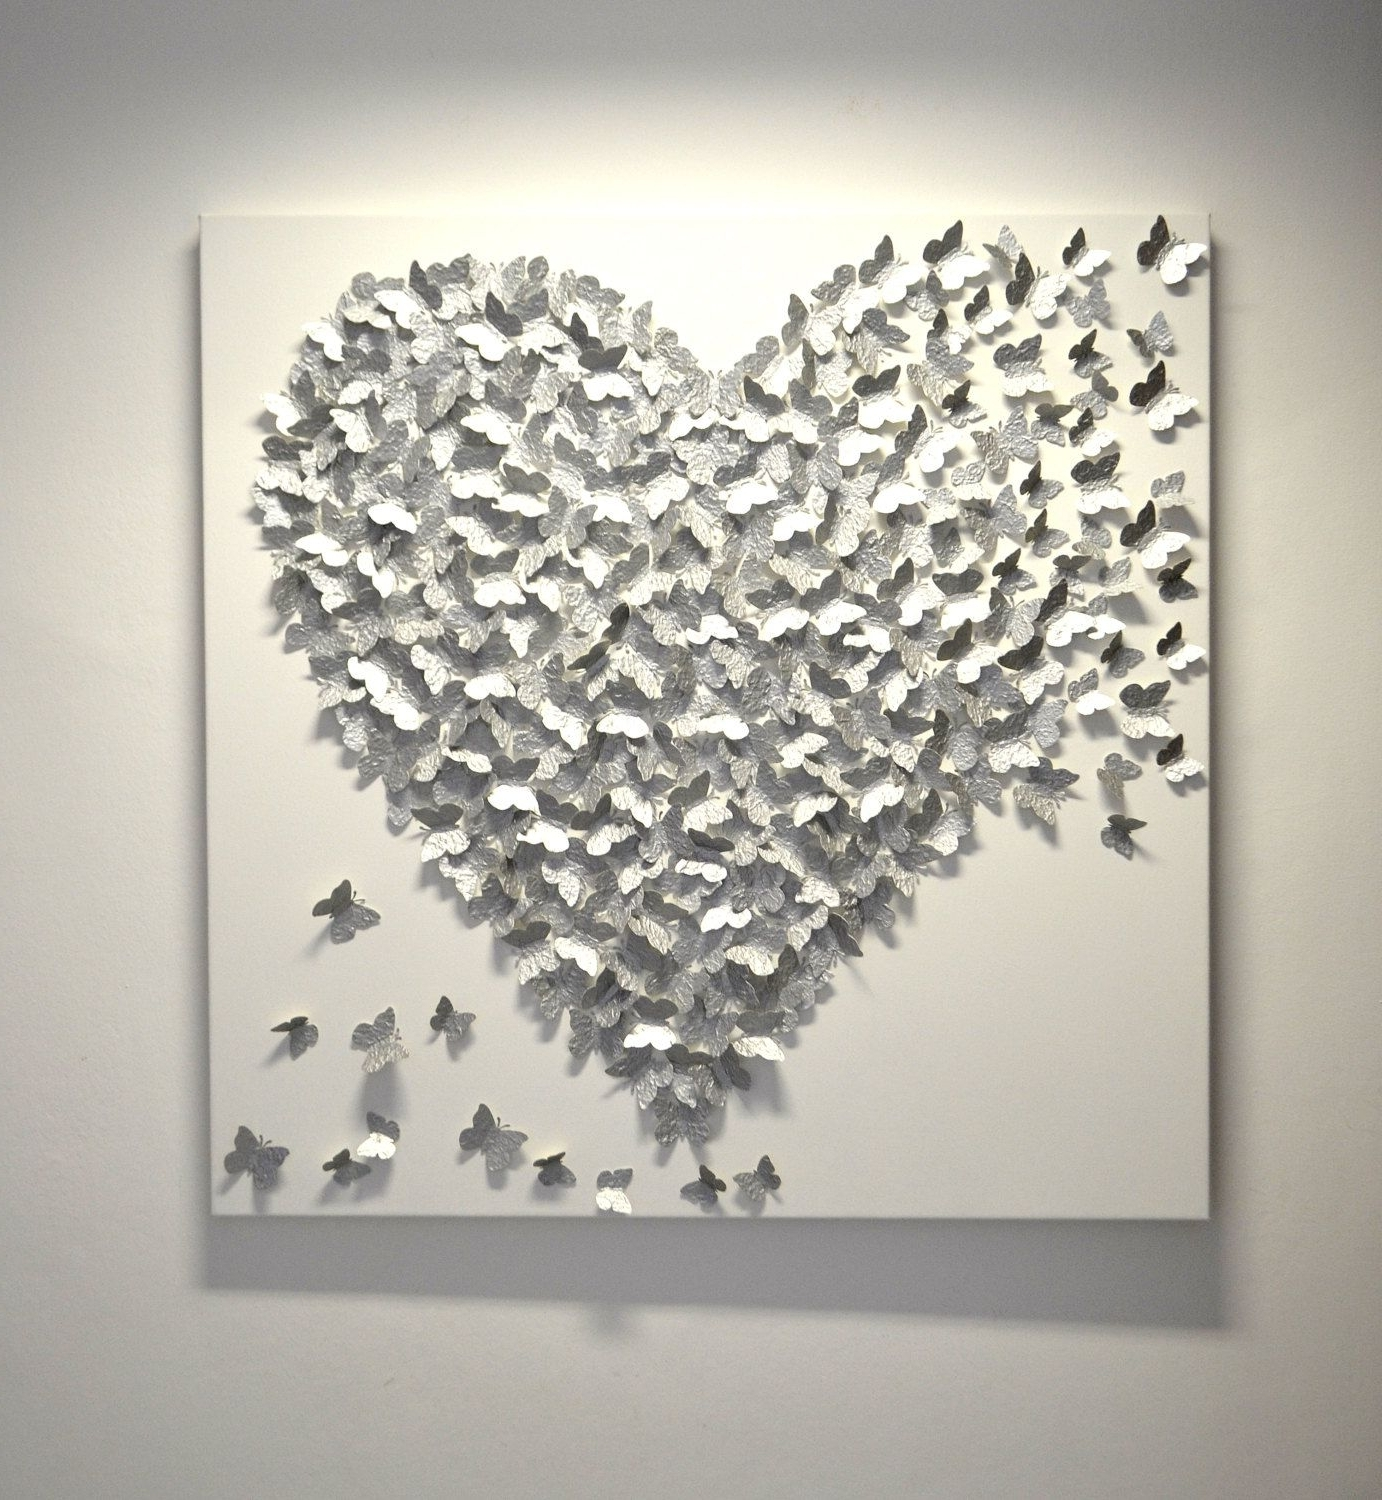 Silver Wall Art throughout Fashionable 3D Silver Butterfly Art - Hollywood Regency Glam / Modern Statement